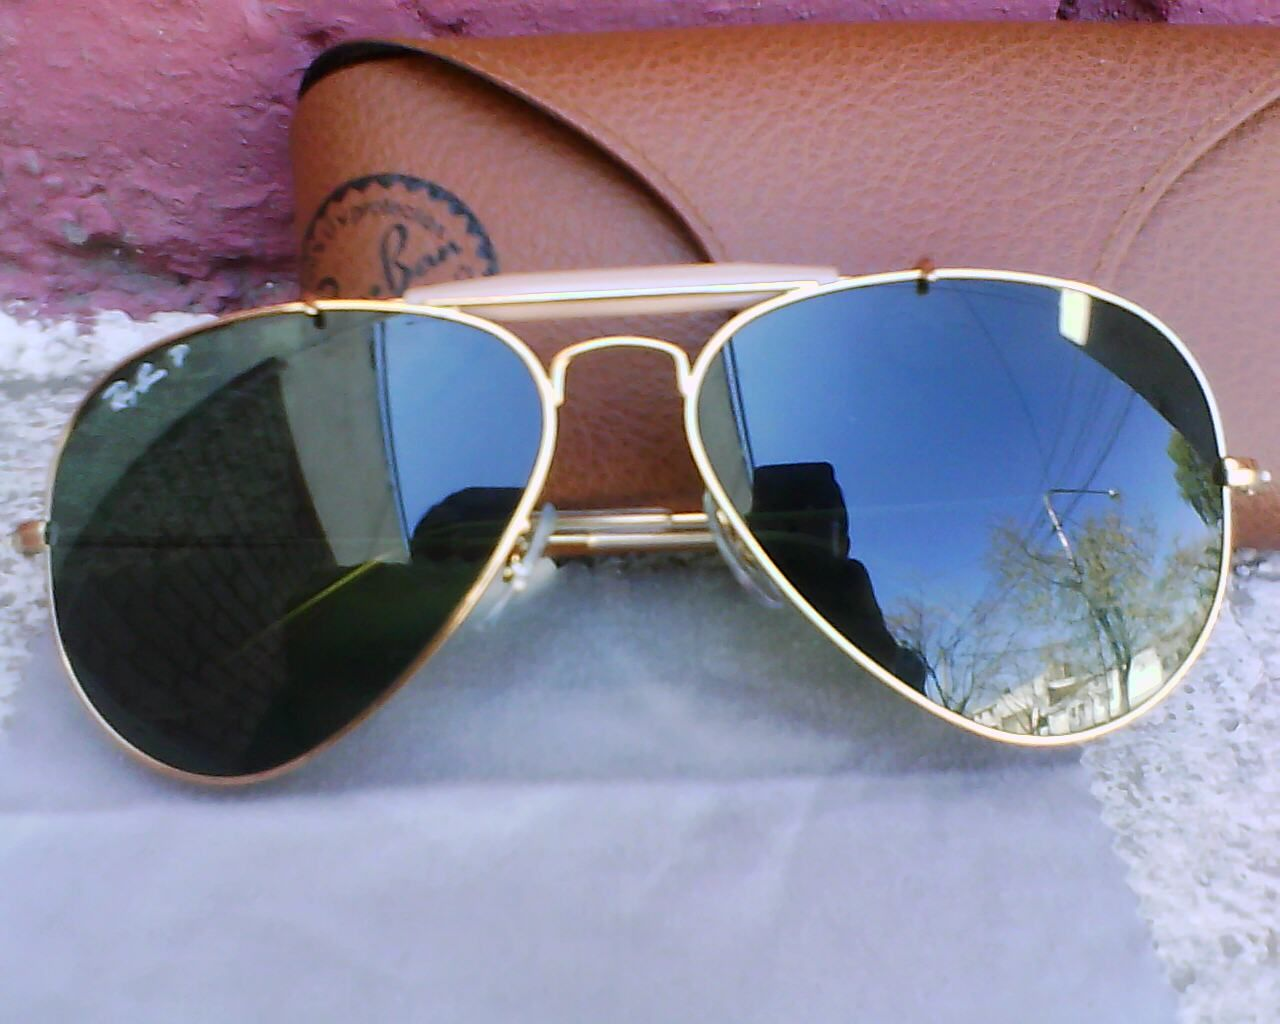 cheap authentic ray ban sunglasses  Only 拢9.9! Buy Authentic Oakley庐 Glasses \u0026 Apparel - Free Delivery ...